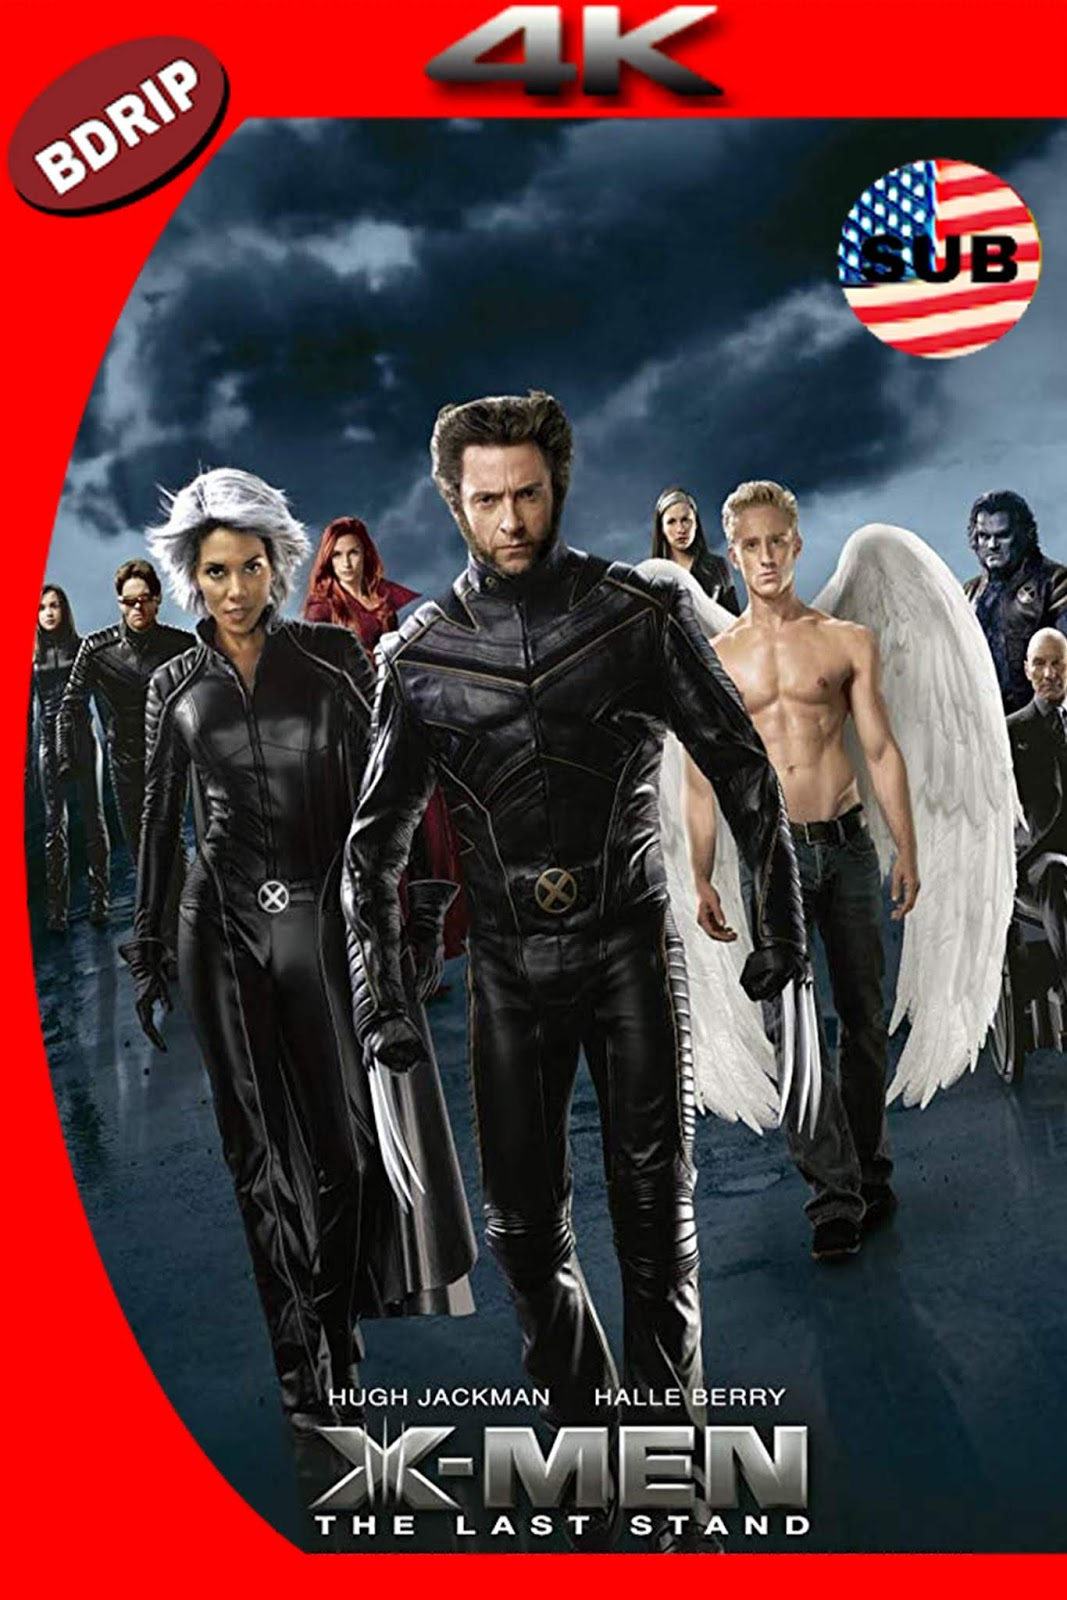 X-MEN THE LAST STAND 2006 BDRIP 4K 3840x1600P 30GB.mkv